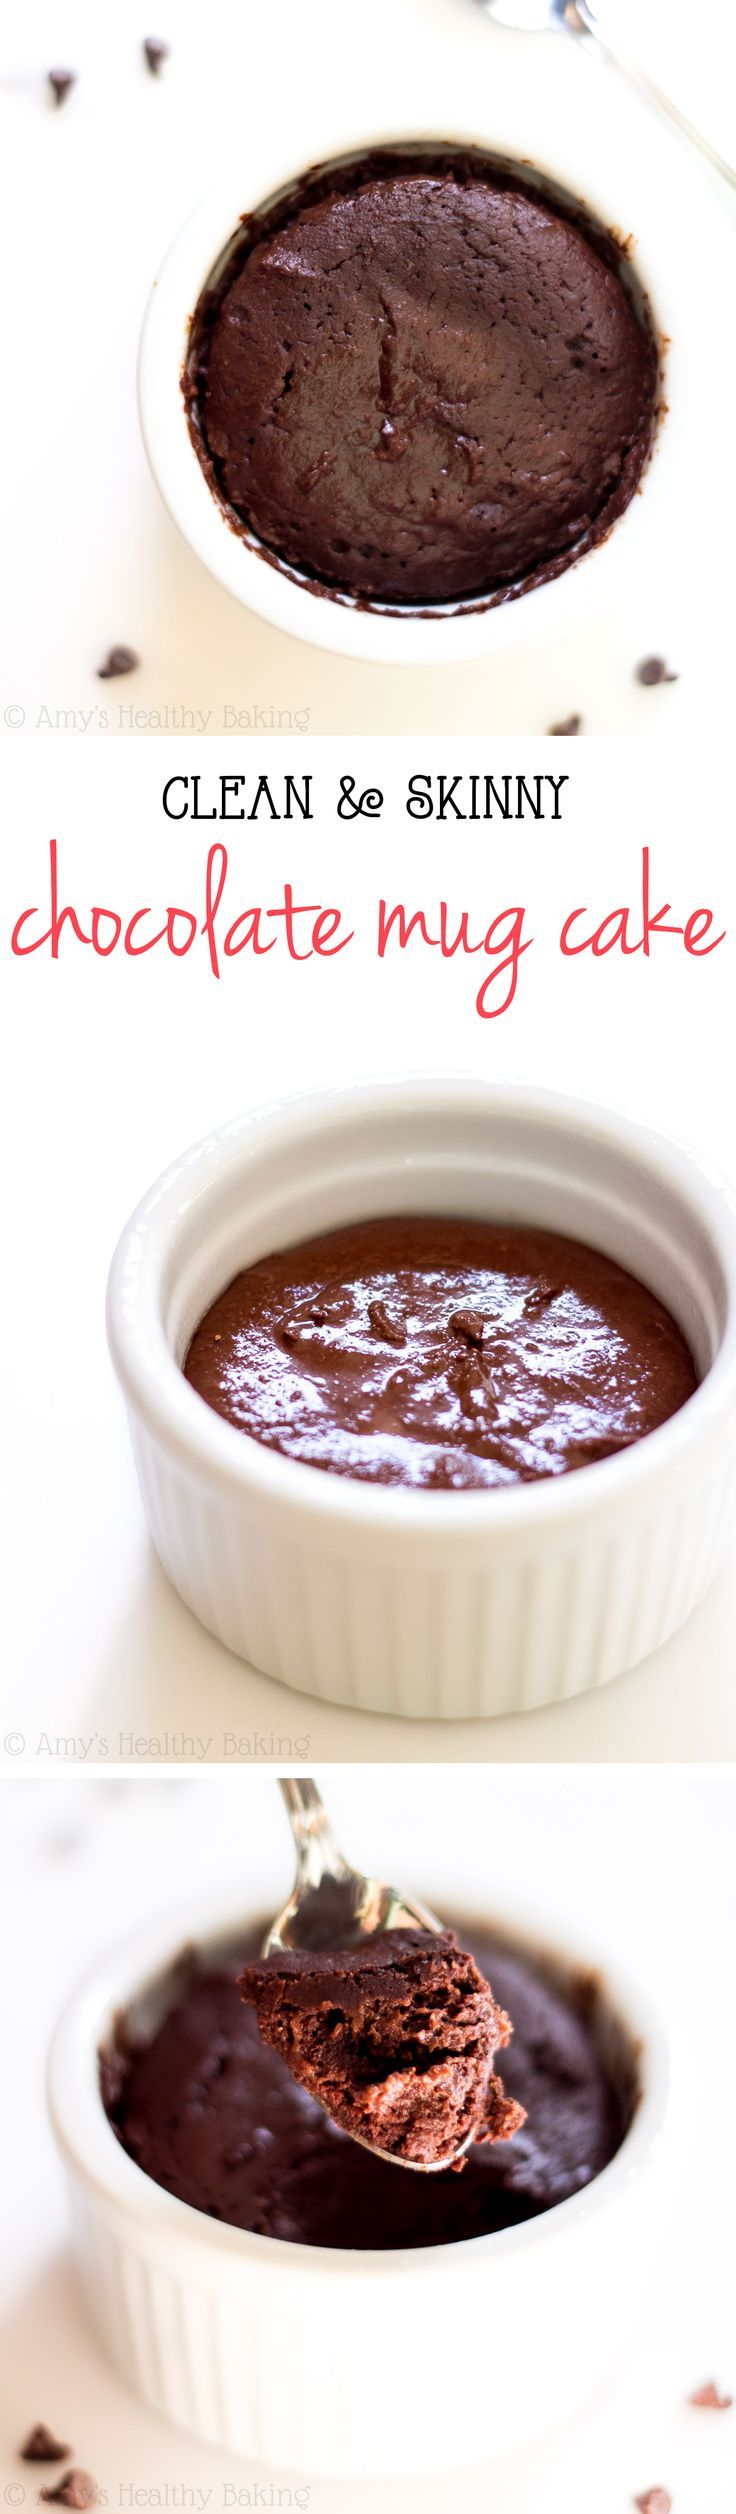 The BEST skinny mug cake you'll ever have! It's so rich & doesn't taste healthy at ALL! You'll never need another recipe again!